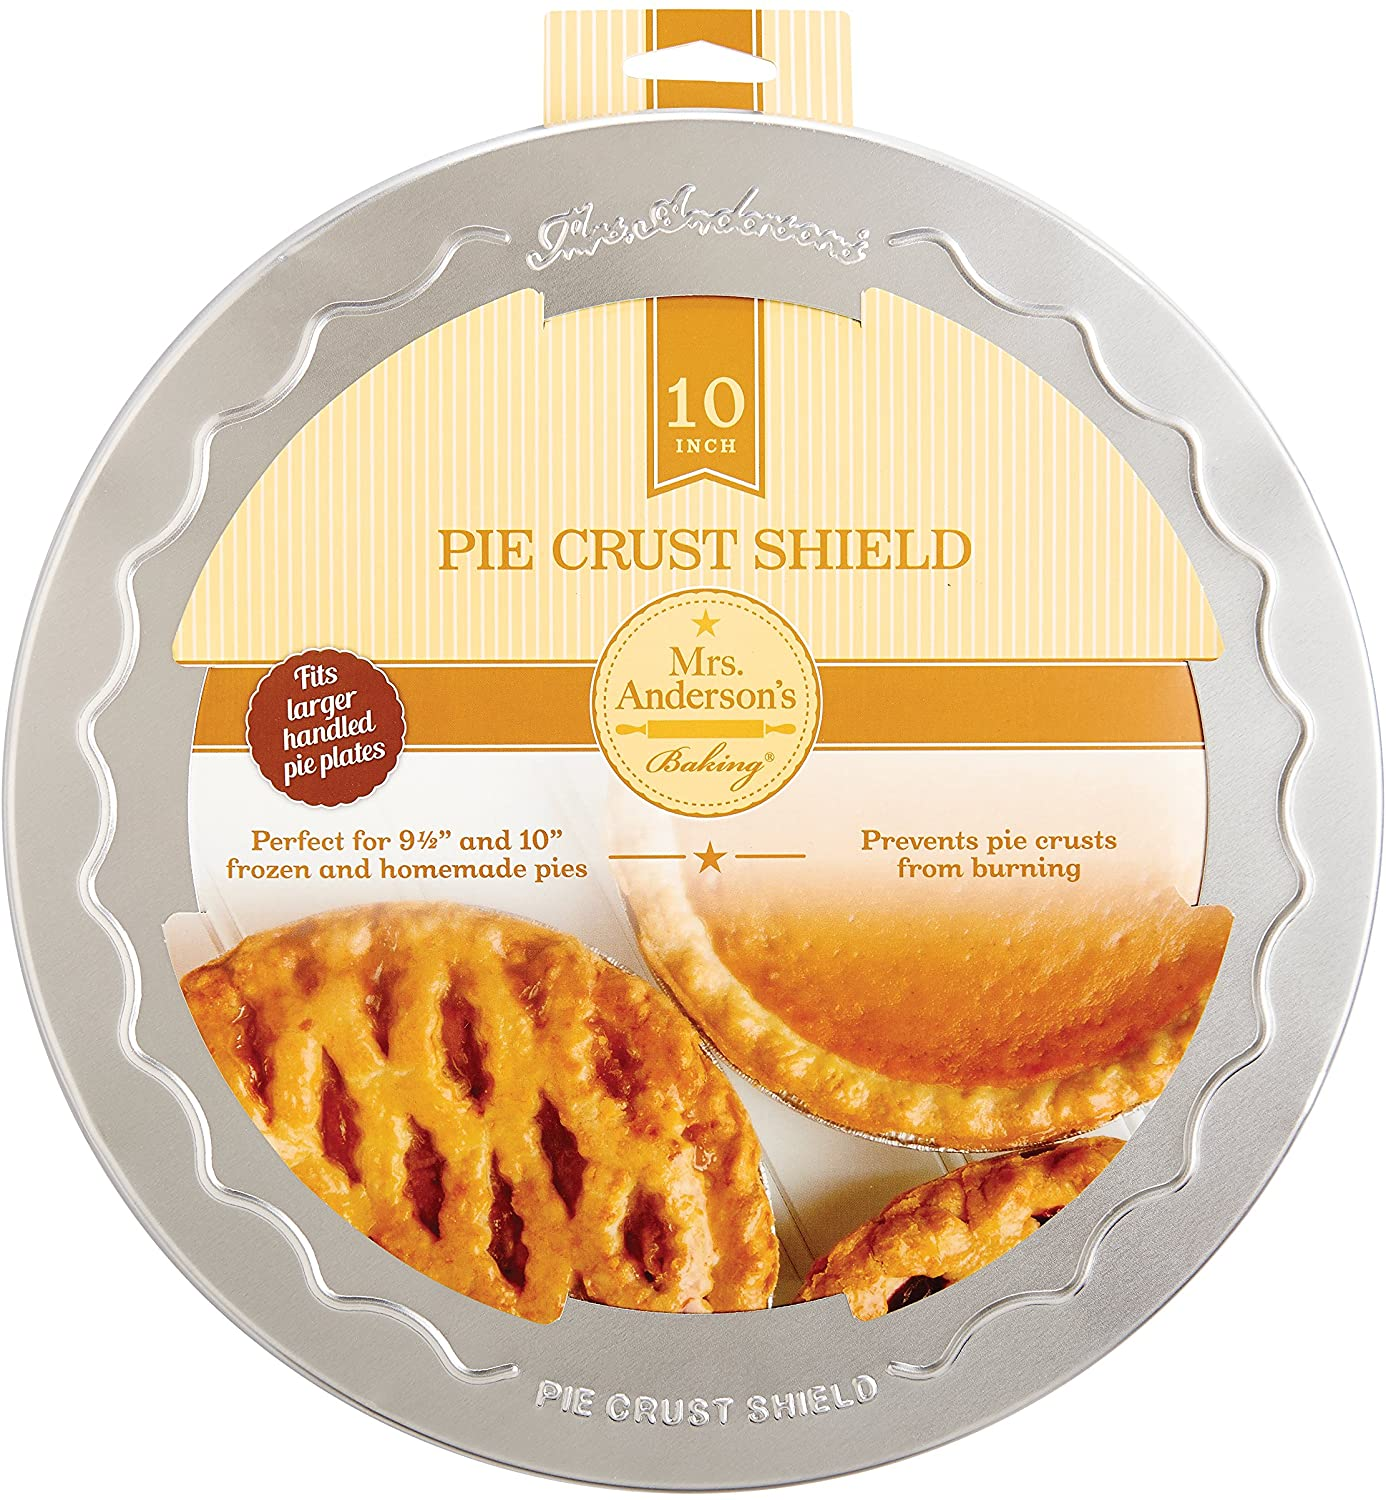 Mrs. Anderson's Baking Pie Crust Protector Shield